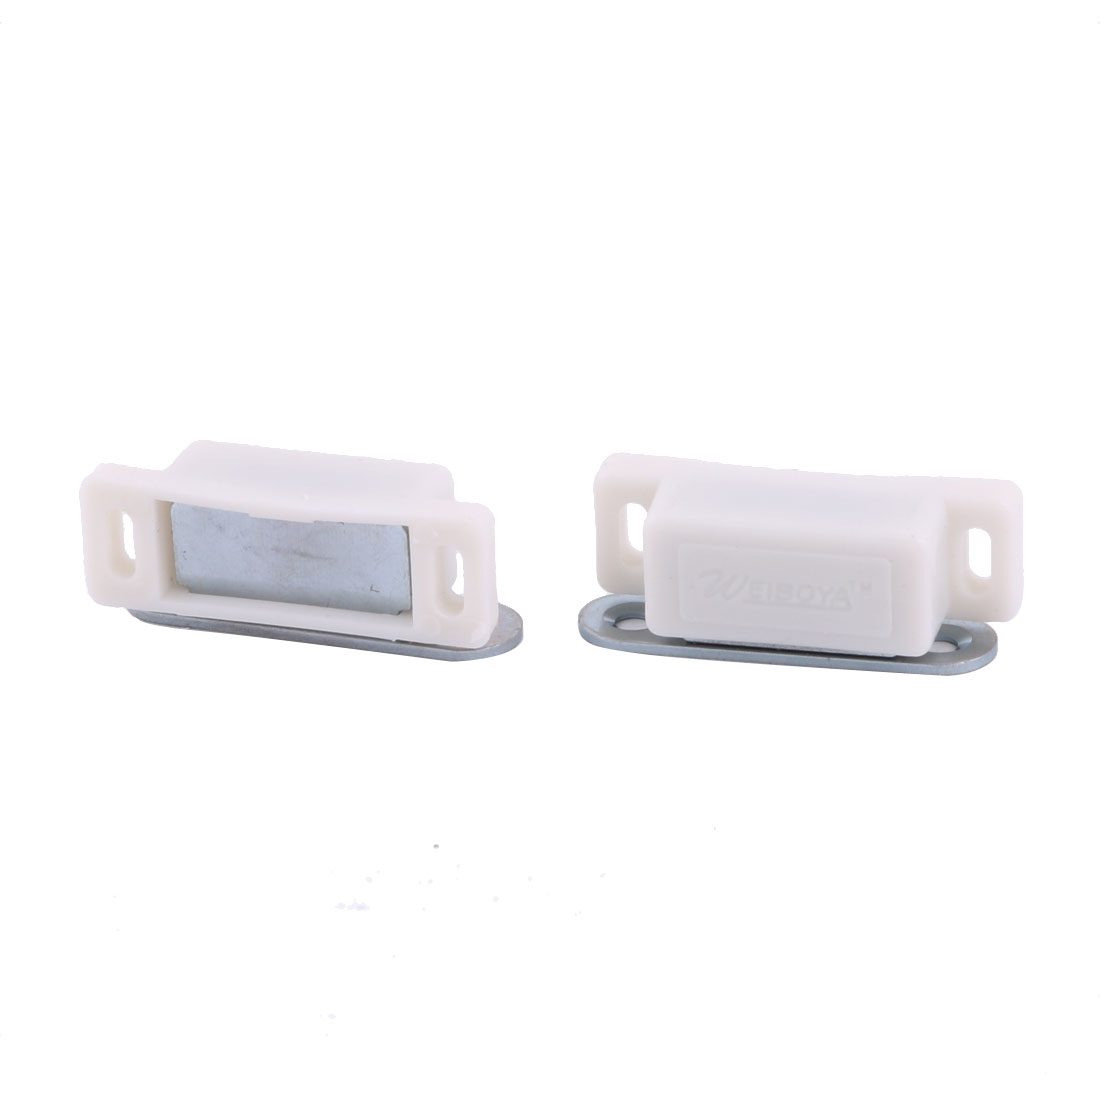 Home Room Plastic Gate Cupboard Cabinet Stopper Holder Magnetic Catch Latch 2pcs